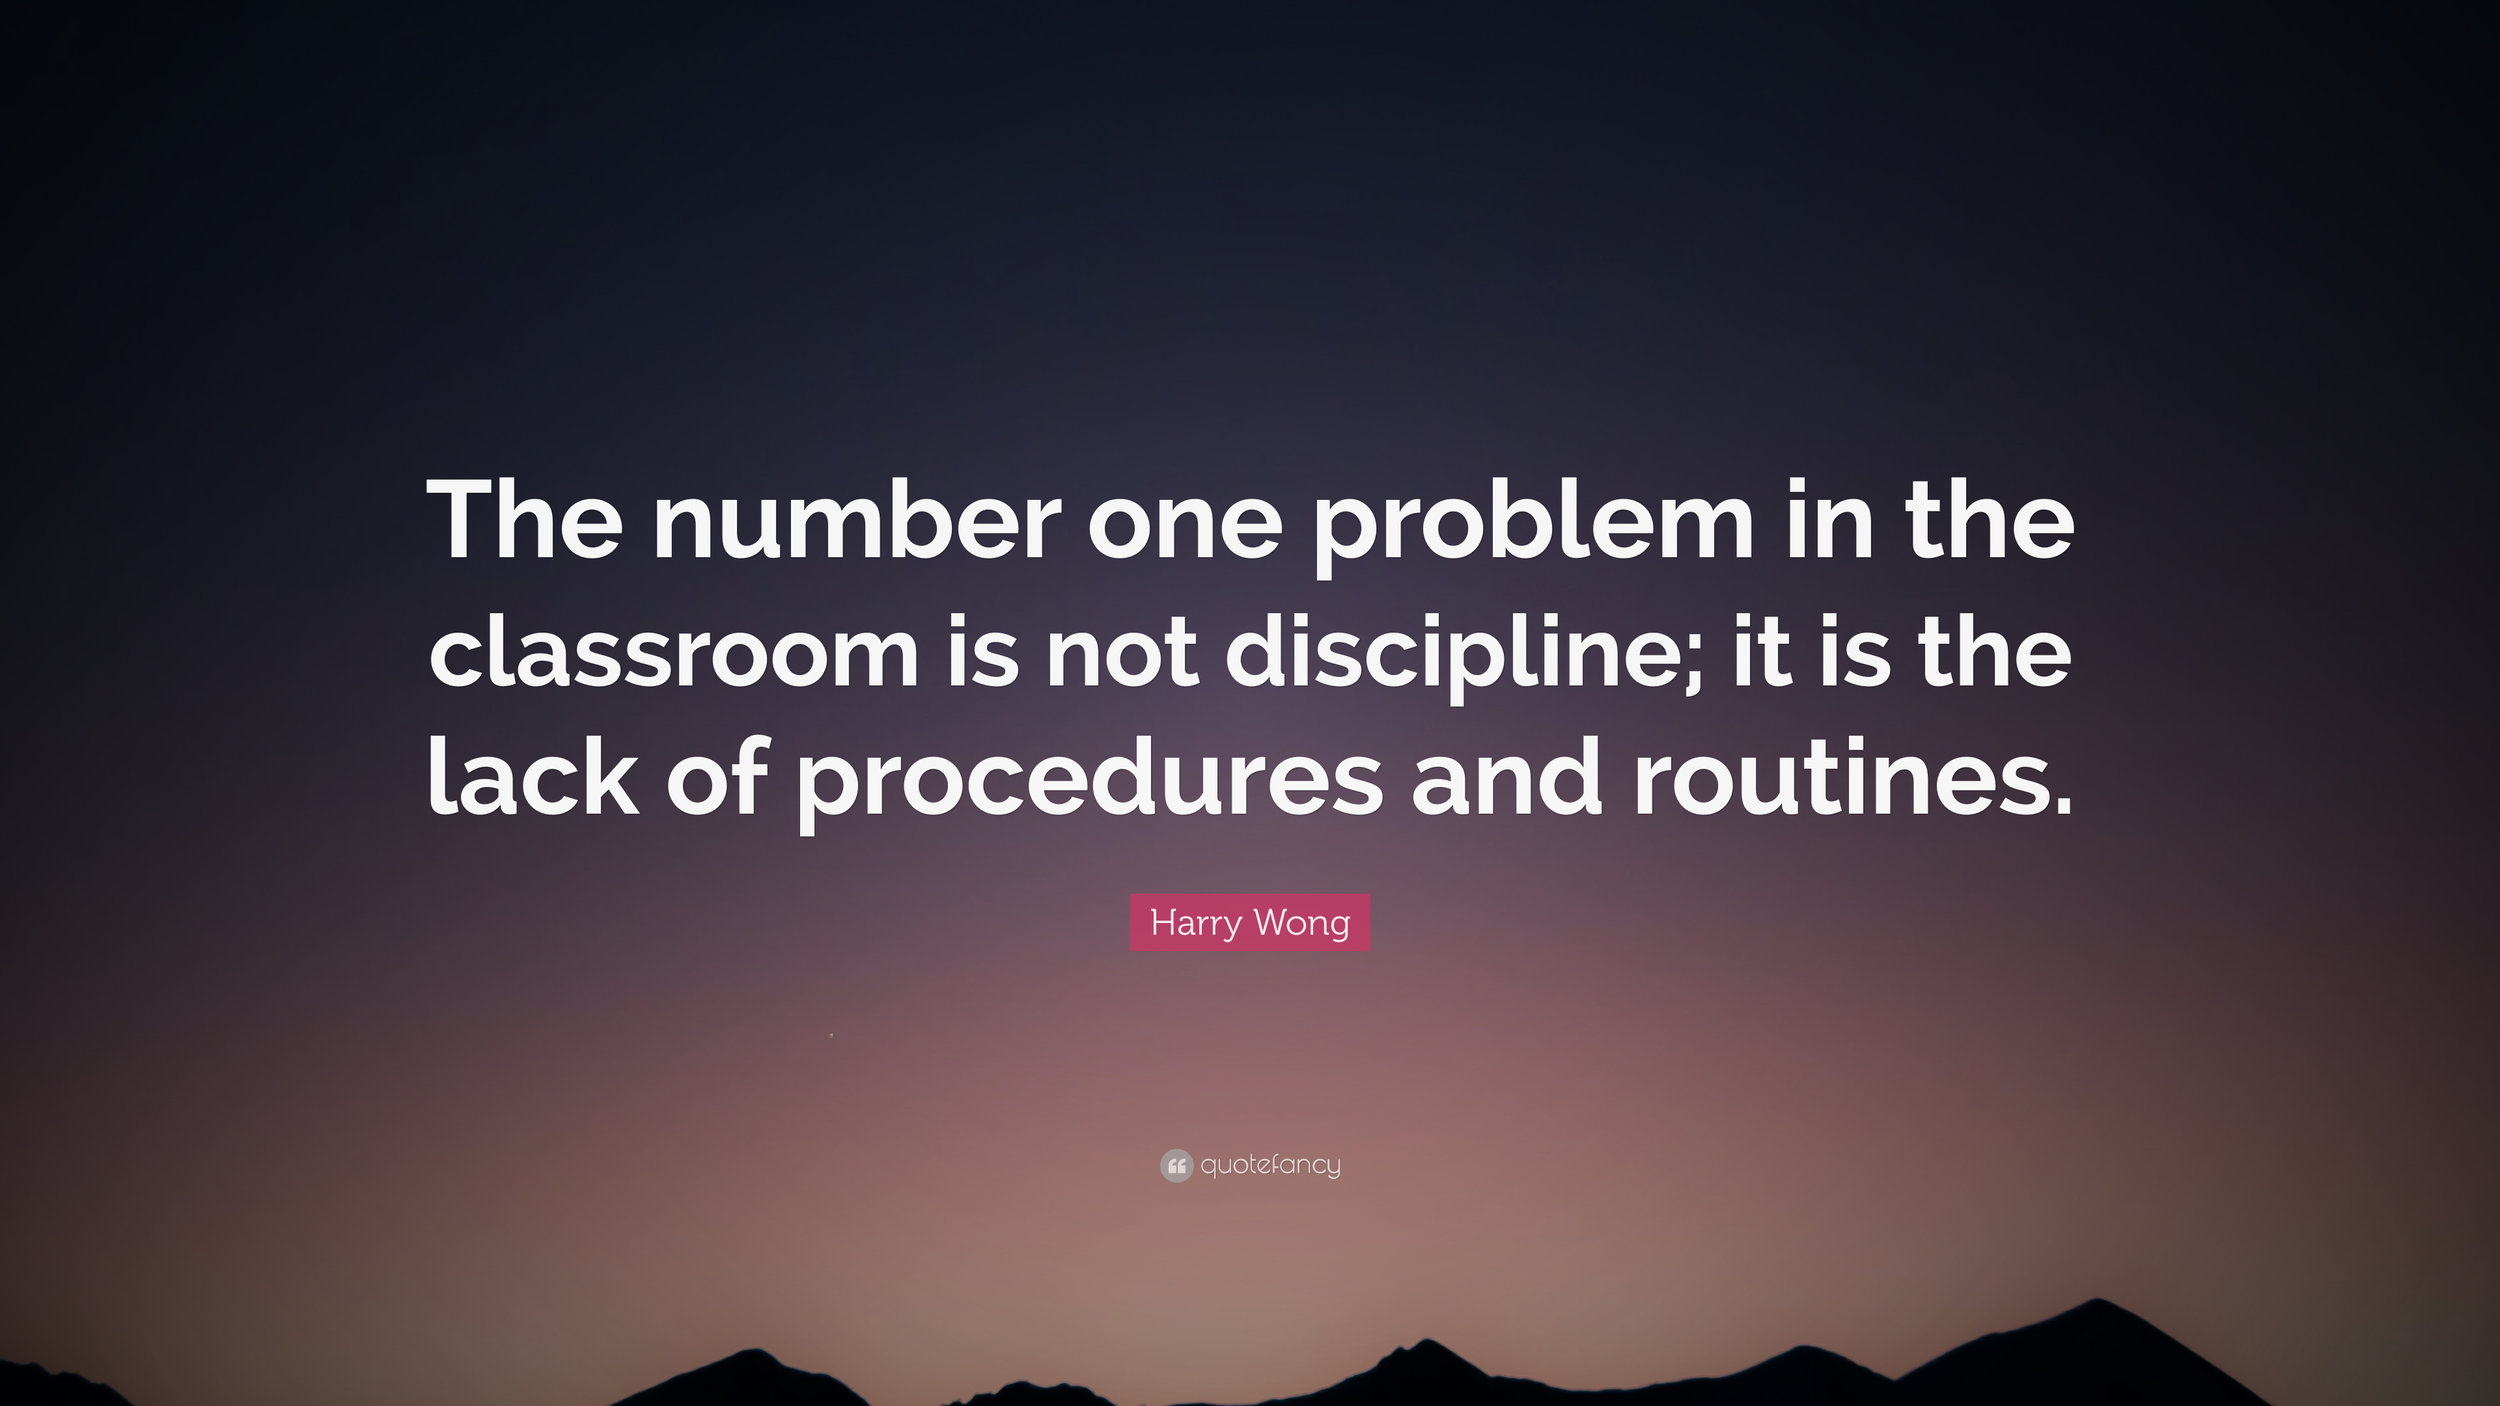 4490599-Harry-Wong-Quote-The-number-one-problem-in-the-classroom-is-not.jpg